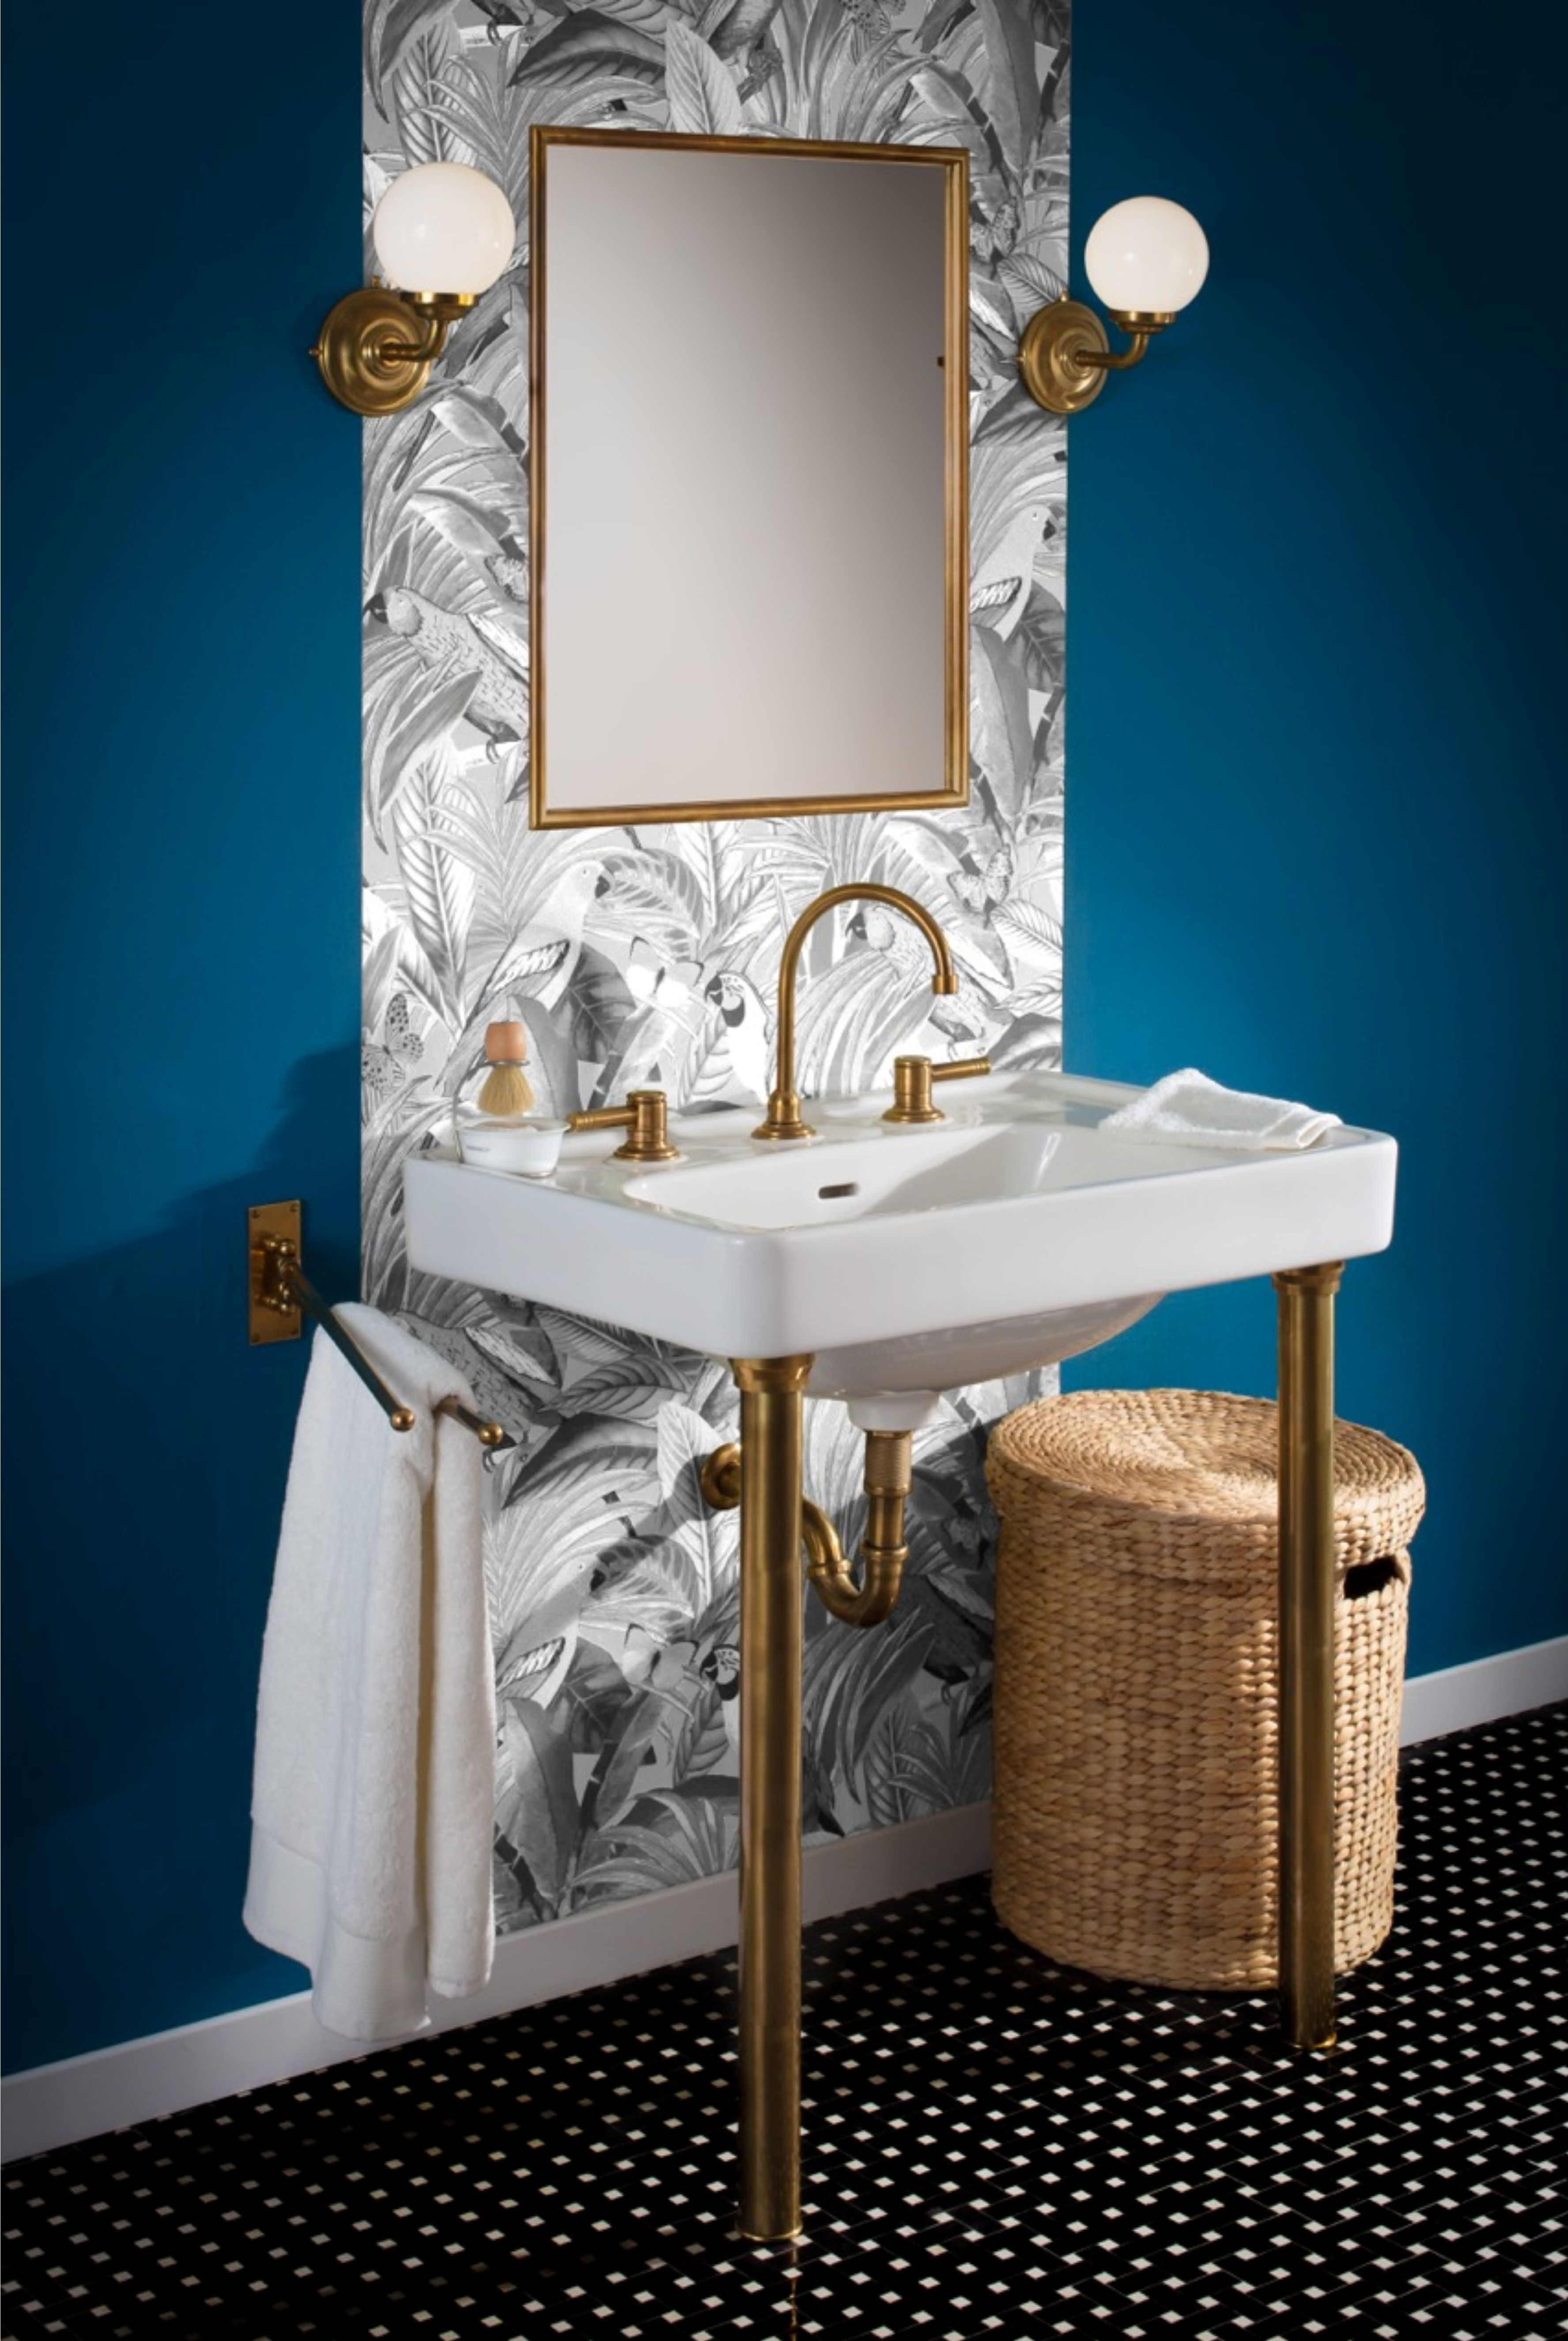 Herbeau Art Deco console sink +faucet with brass legs | Herbeau ...